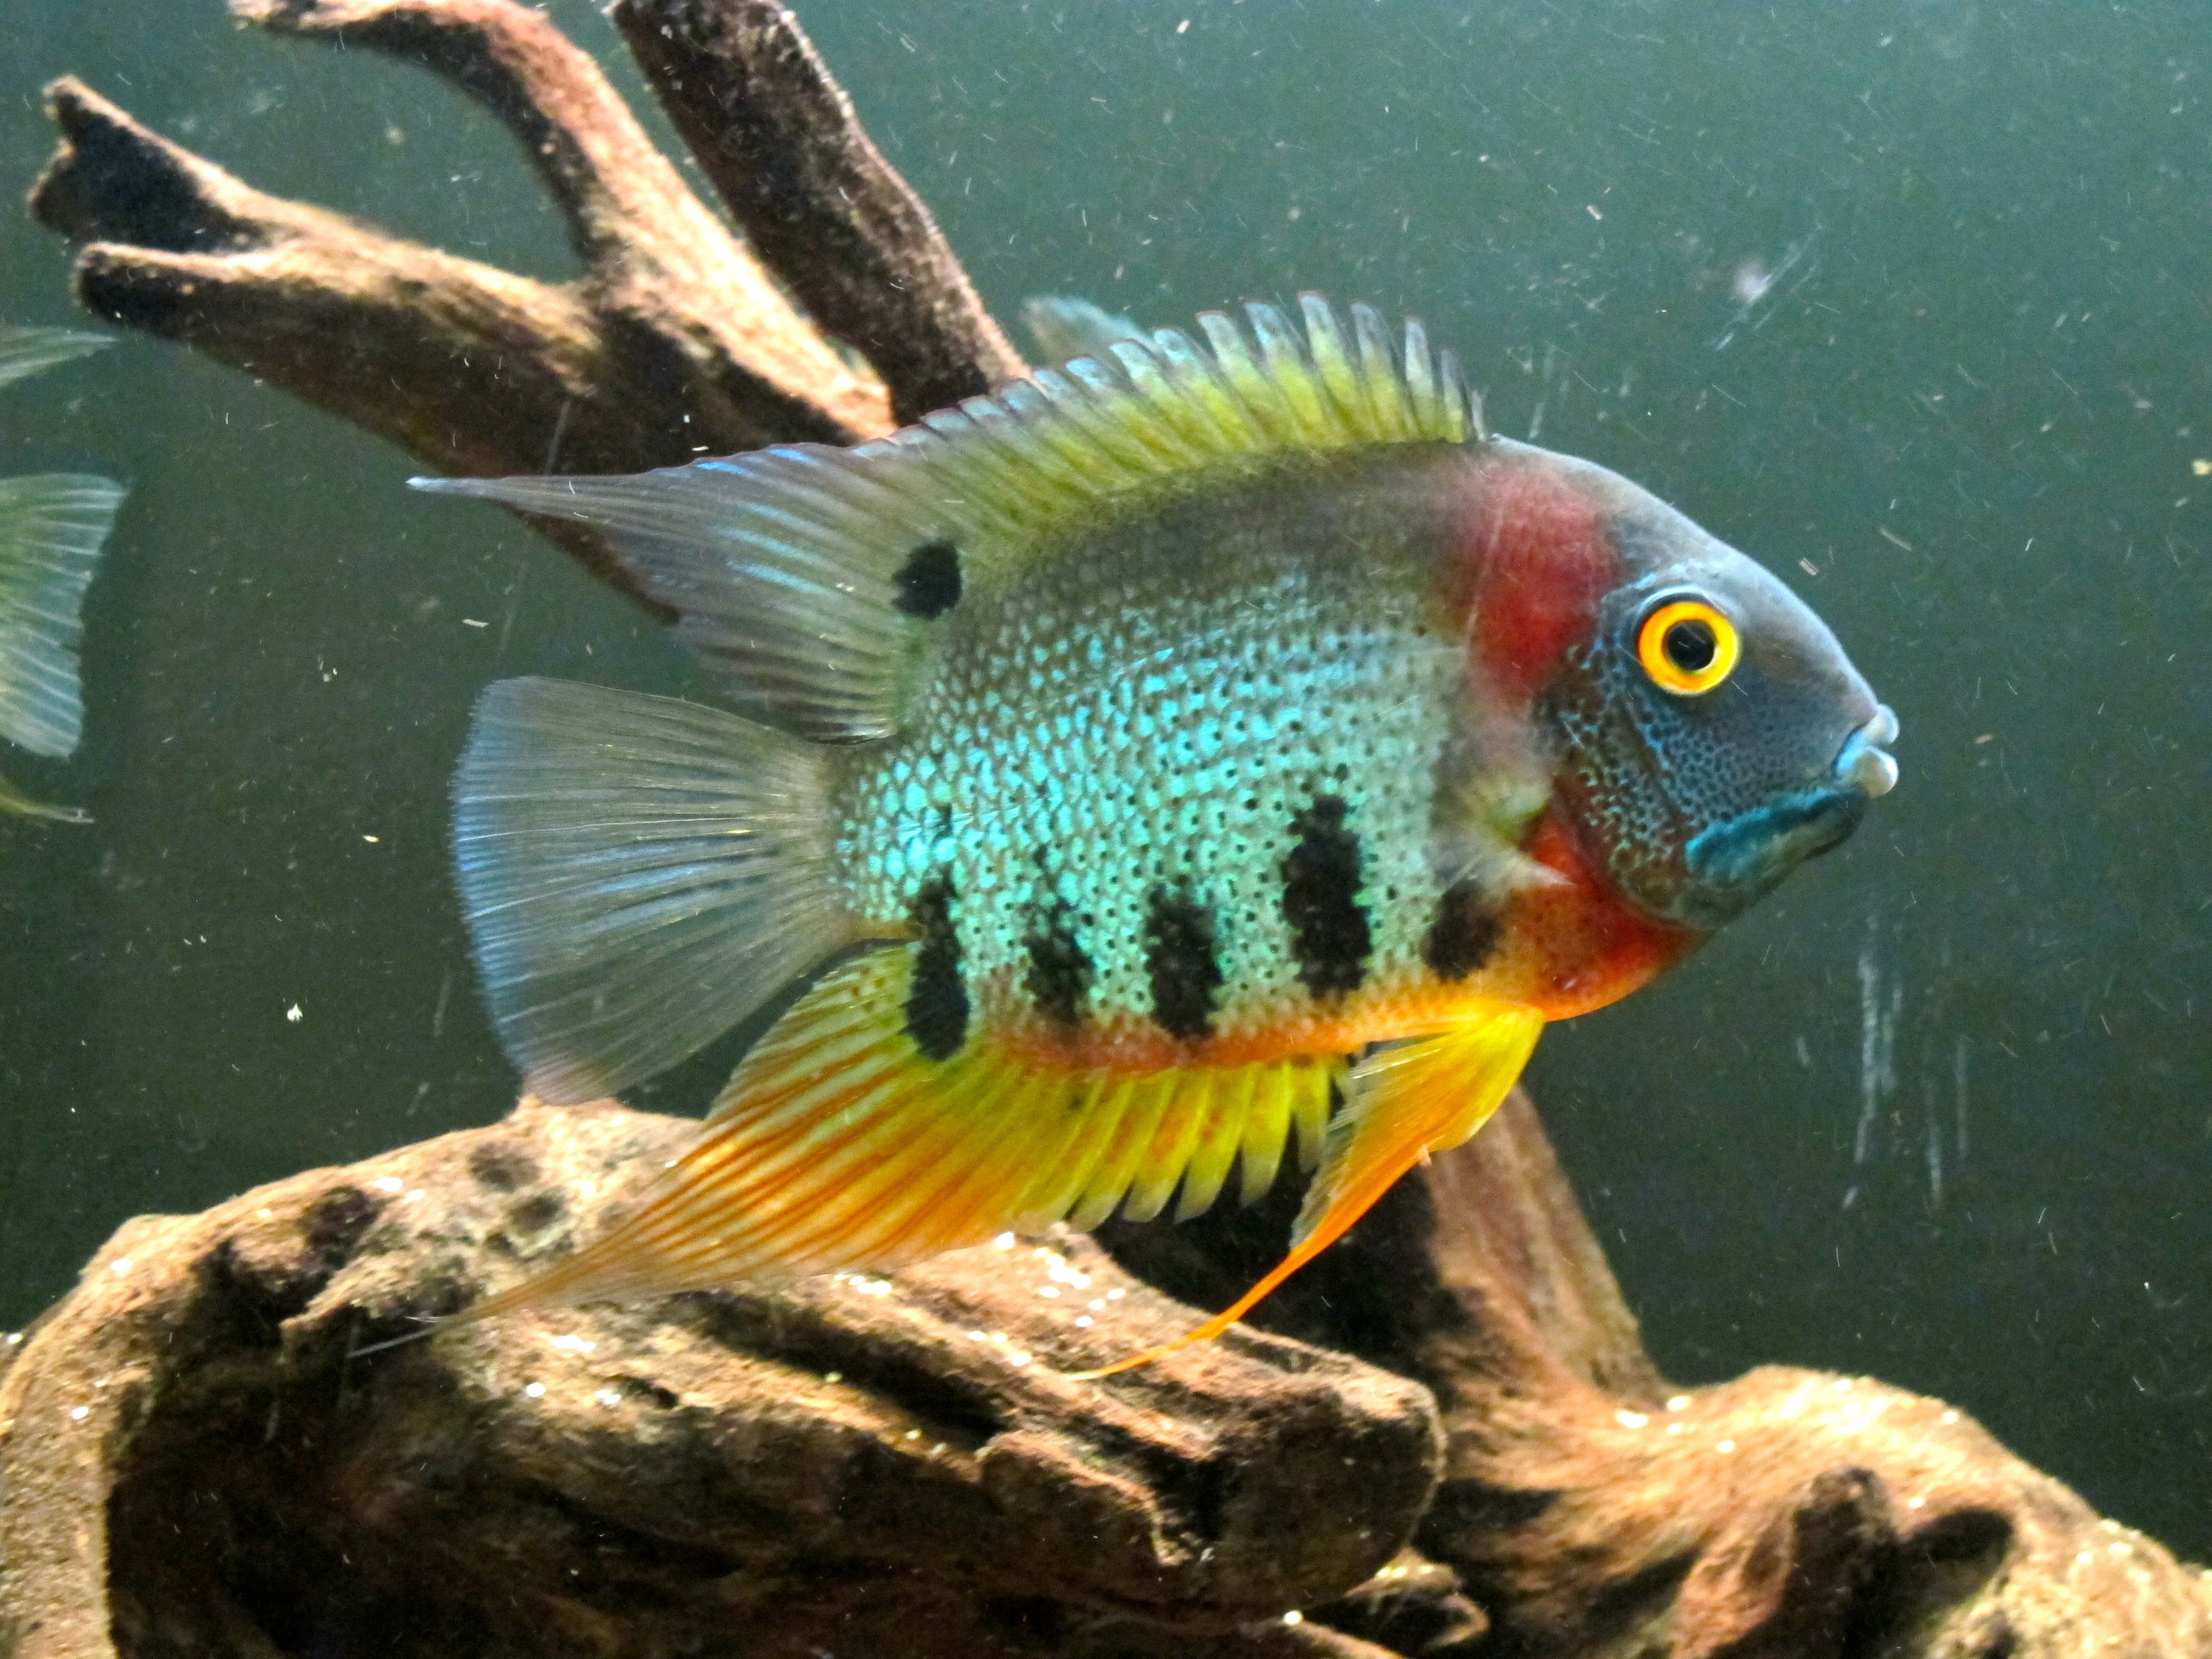 Freshwater aquarium fish exporters - Tropical Discus Fish